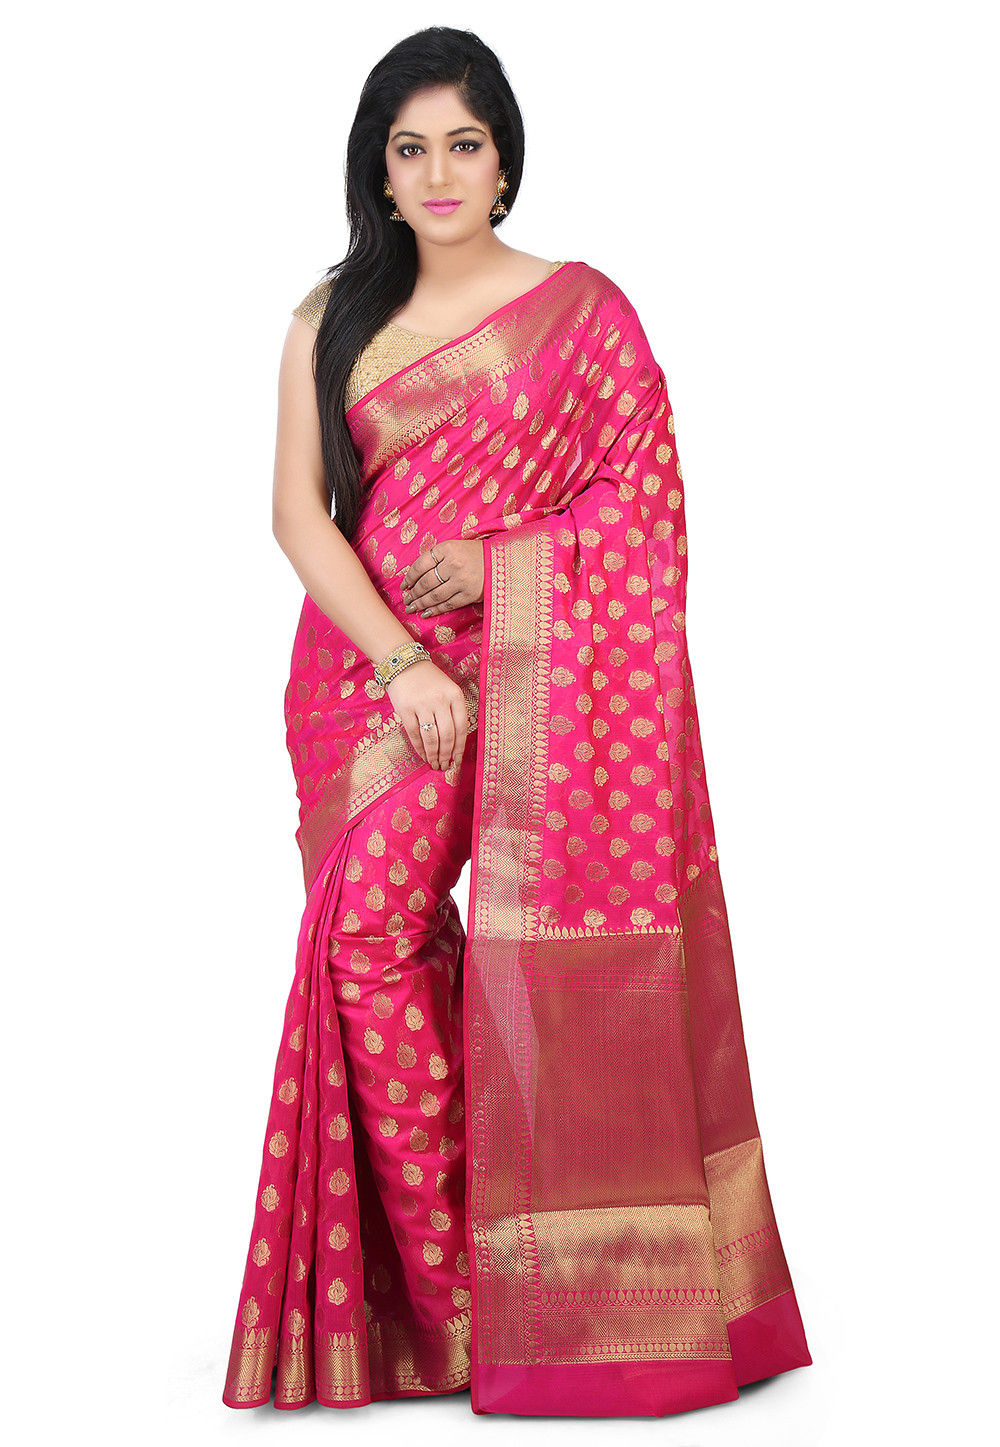 Woven Chanderi Silk Saree in Fuchsia